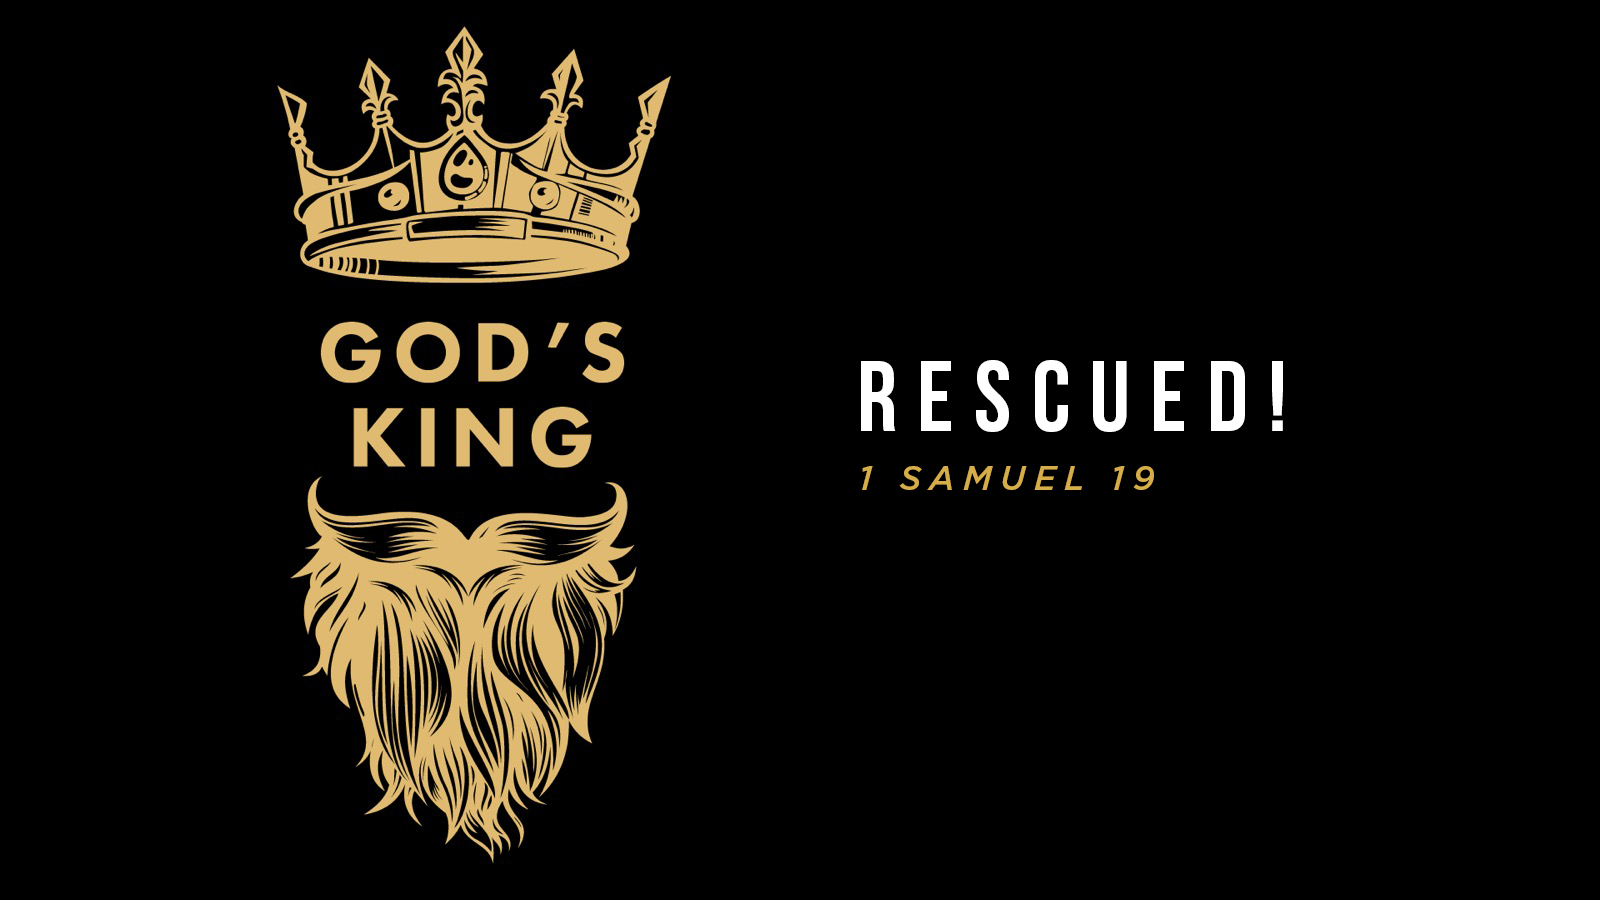 Rescued God's King